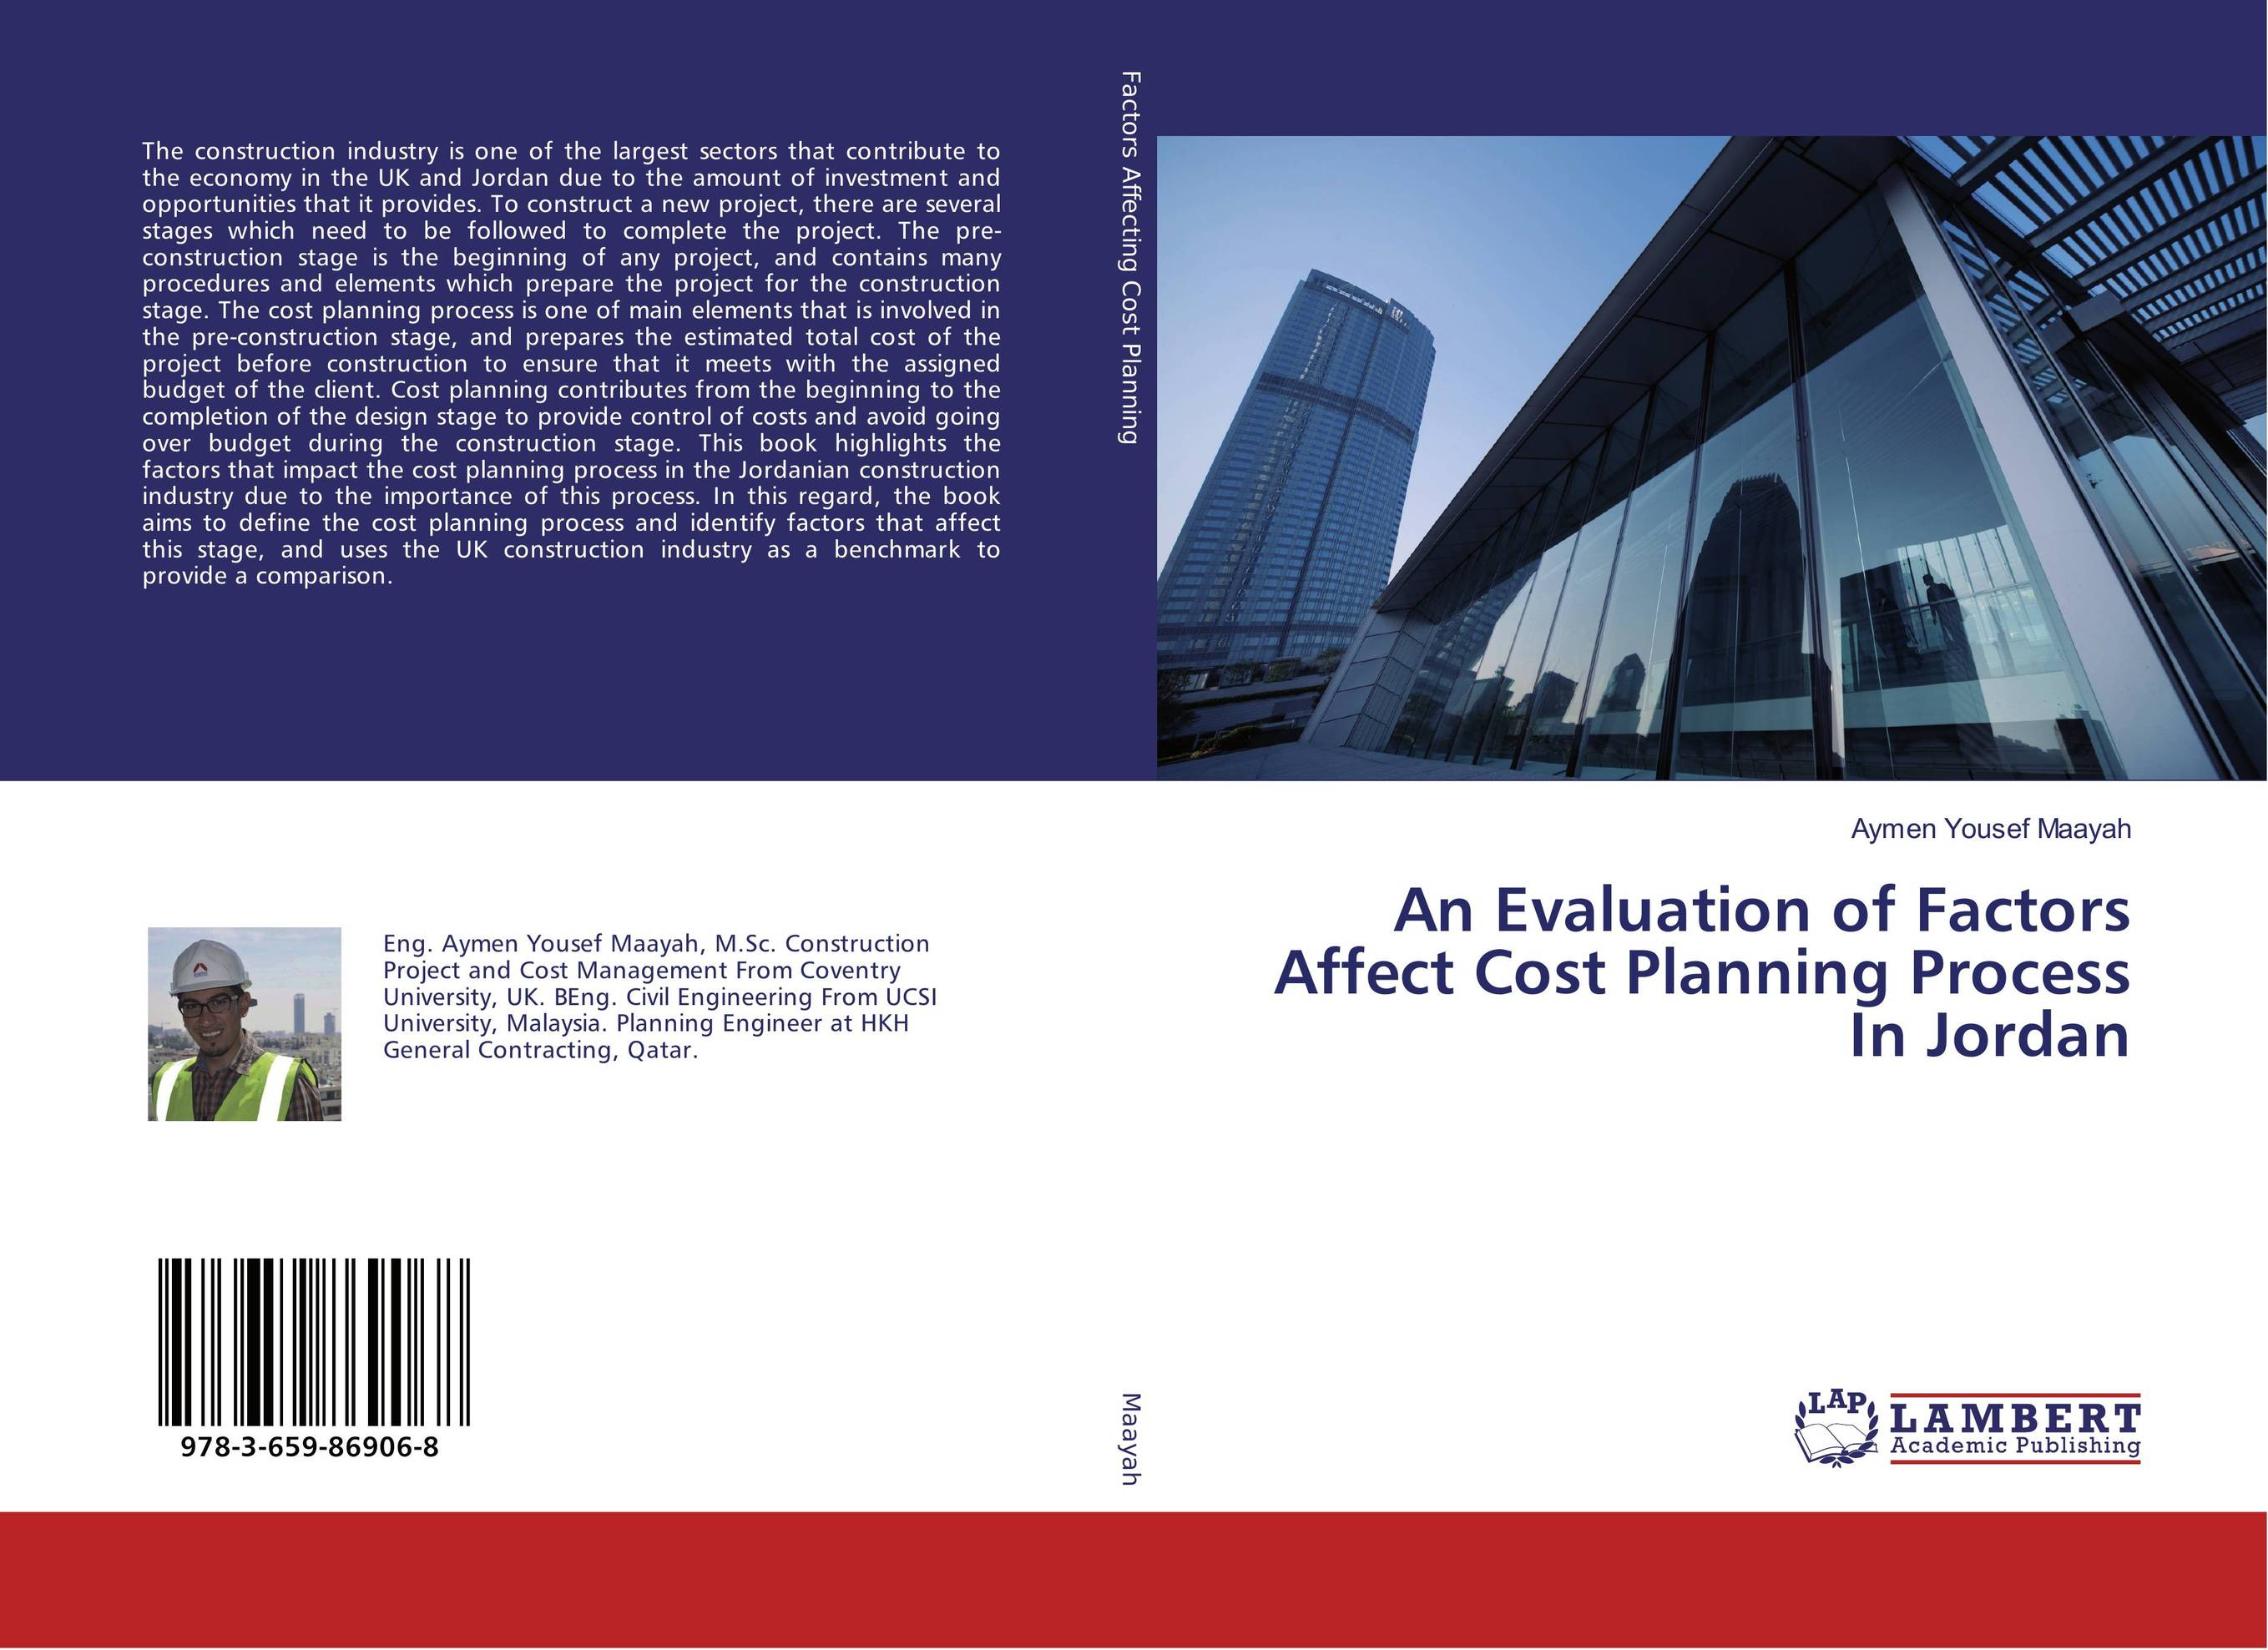 An Evaluation of Factors Affect Cost Planning Process In Jordan